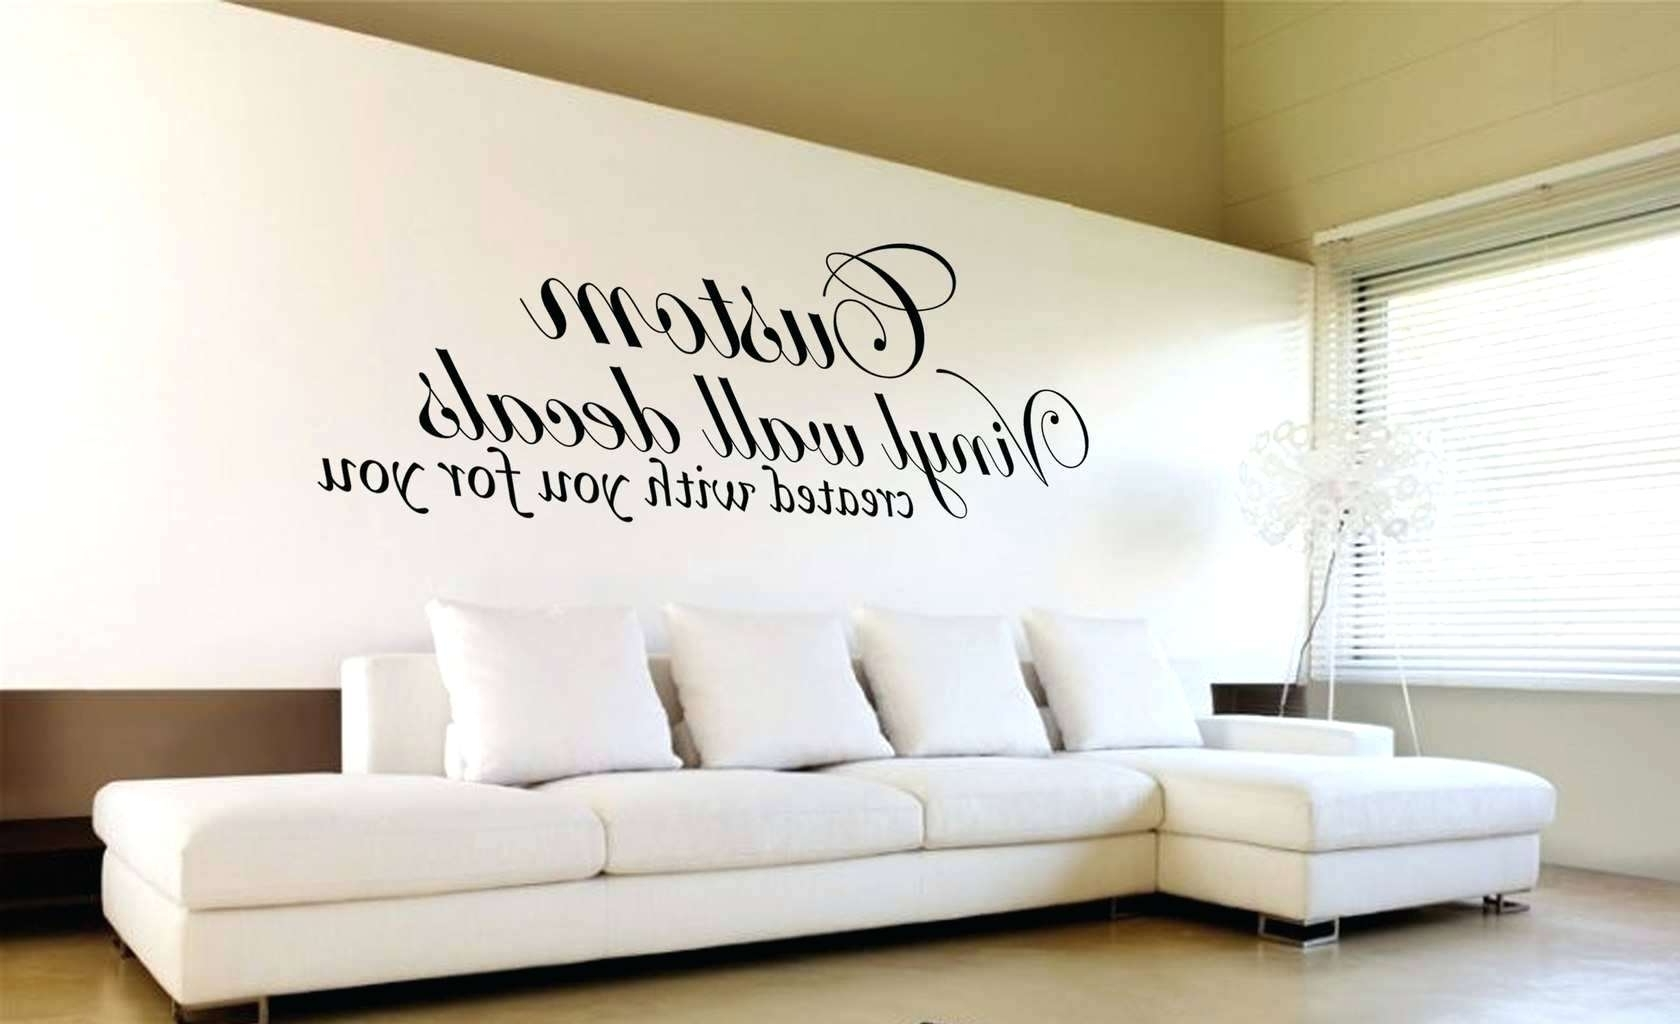 Current Customized Decals For Walls Wall Decals Wall Stickers Murals Wall Regarding Customized Wall Art (View 2 of 15)